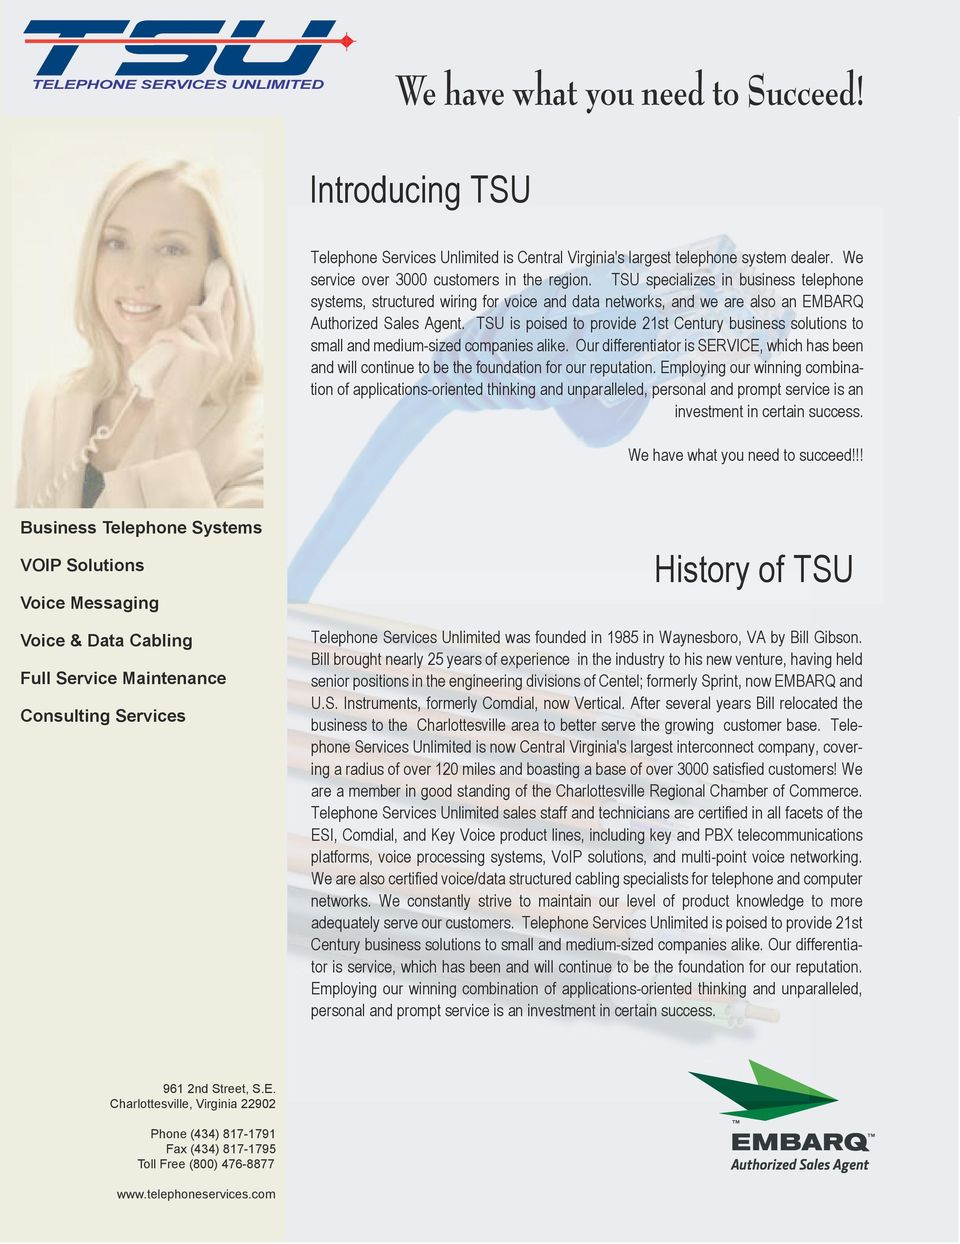 TSU is poised to provide 21st Century business solutions to small and medium-sized companies alike.